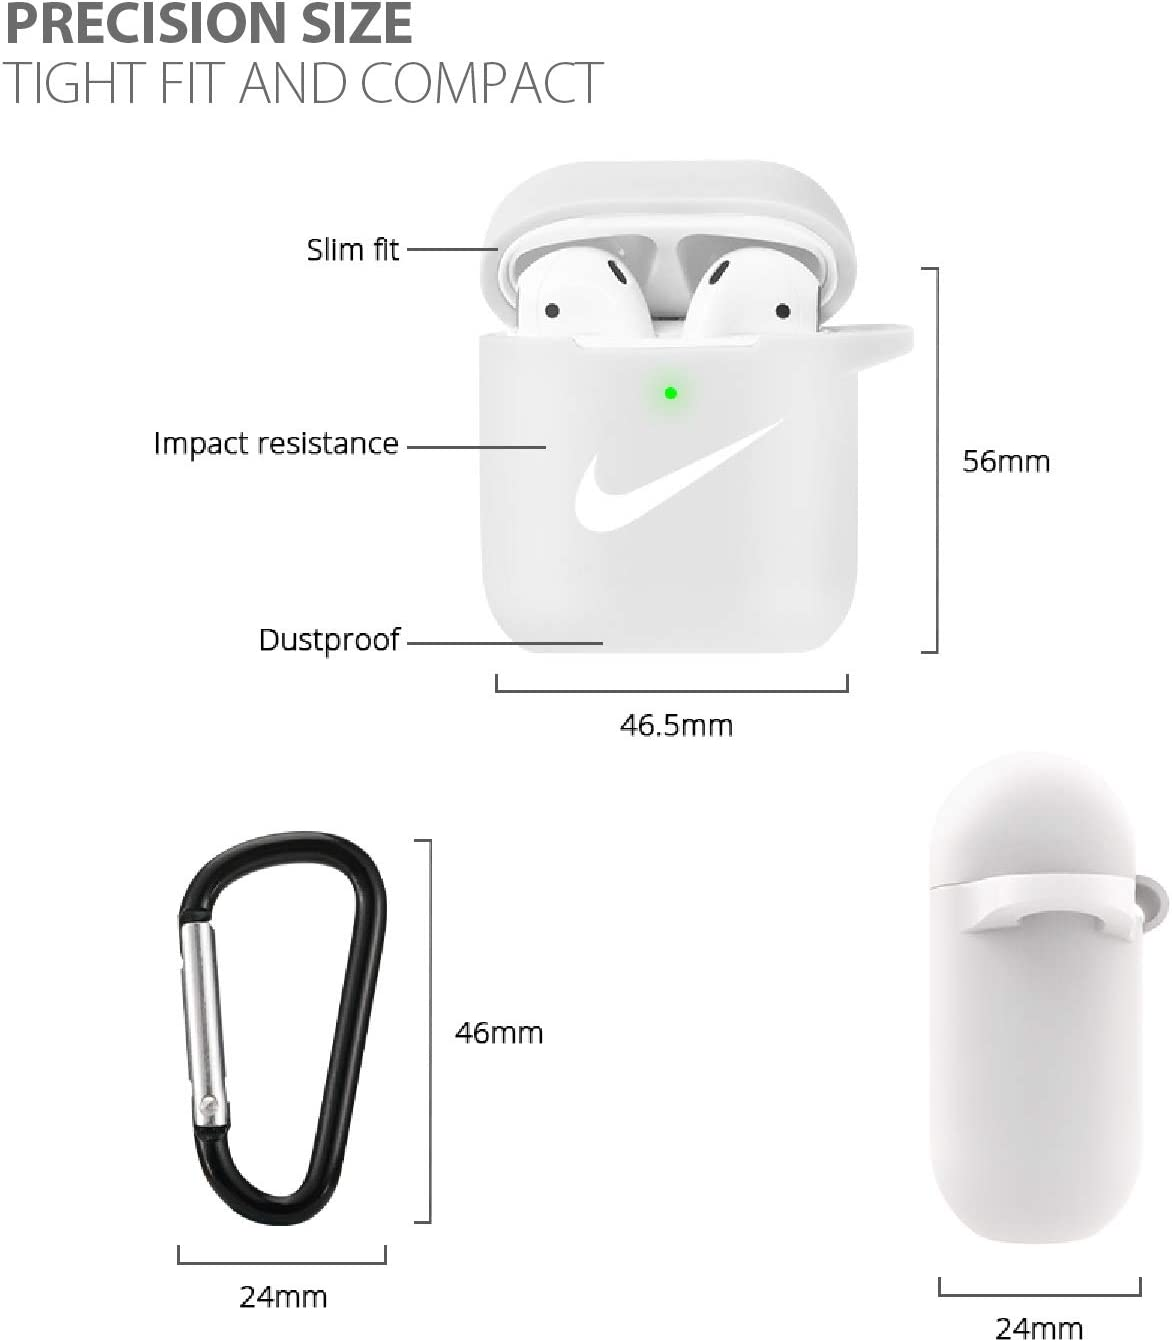 Upgrade AirPods Case Cover Silicone Skin Protective Airpods Accessories for Apple Airpods 2 /& 1 Charging Case with Anti-Lost Carabiner Black Front LED Visible Airpods Case